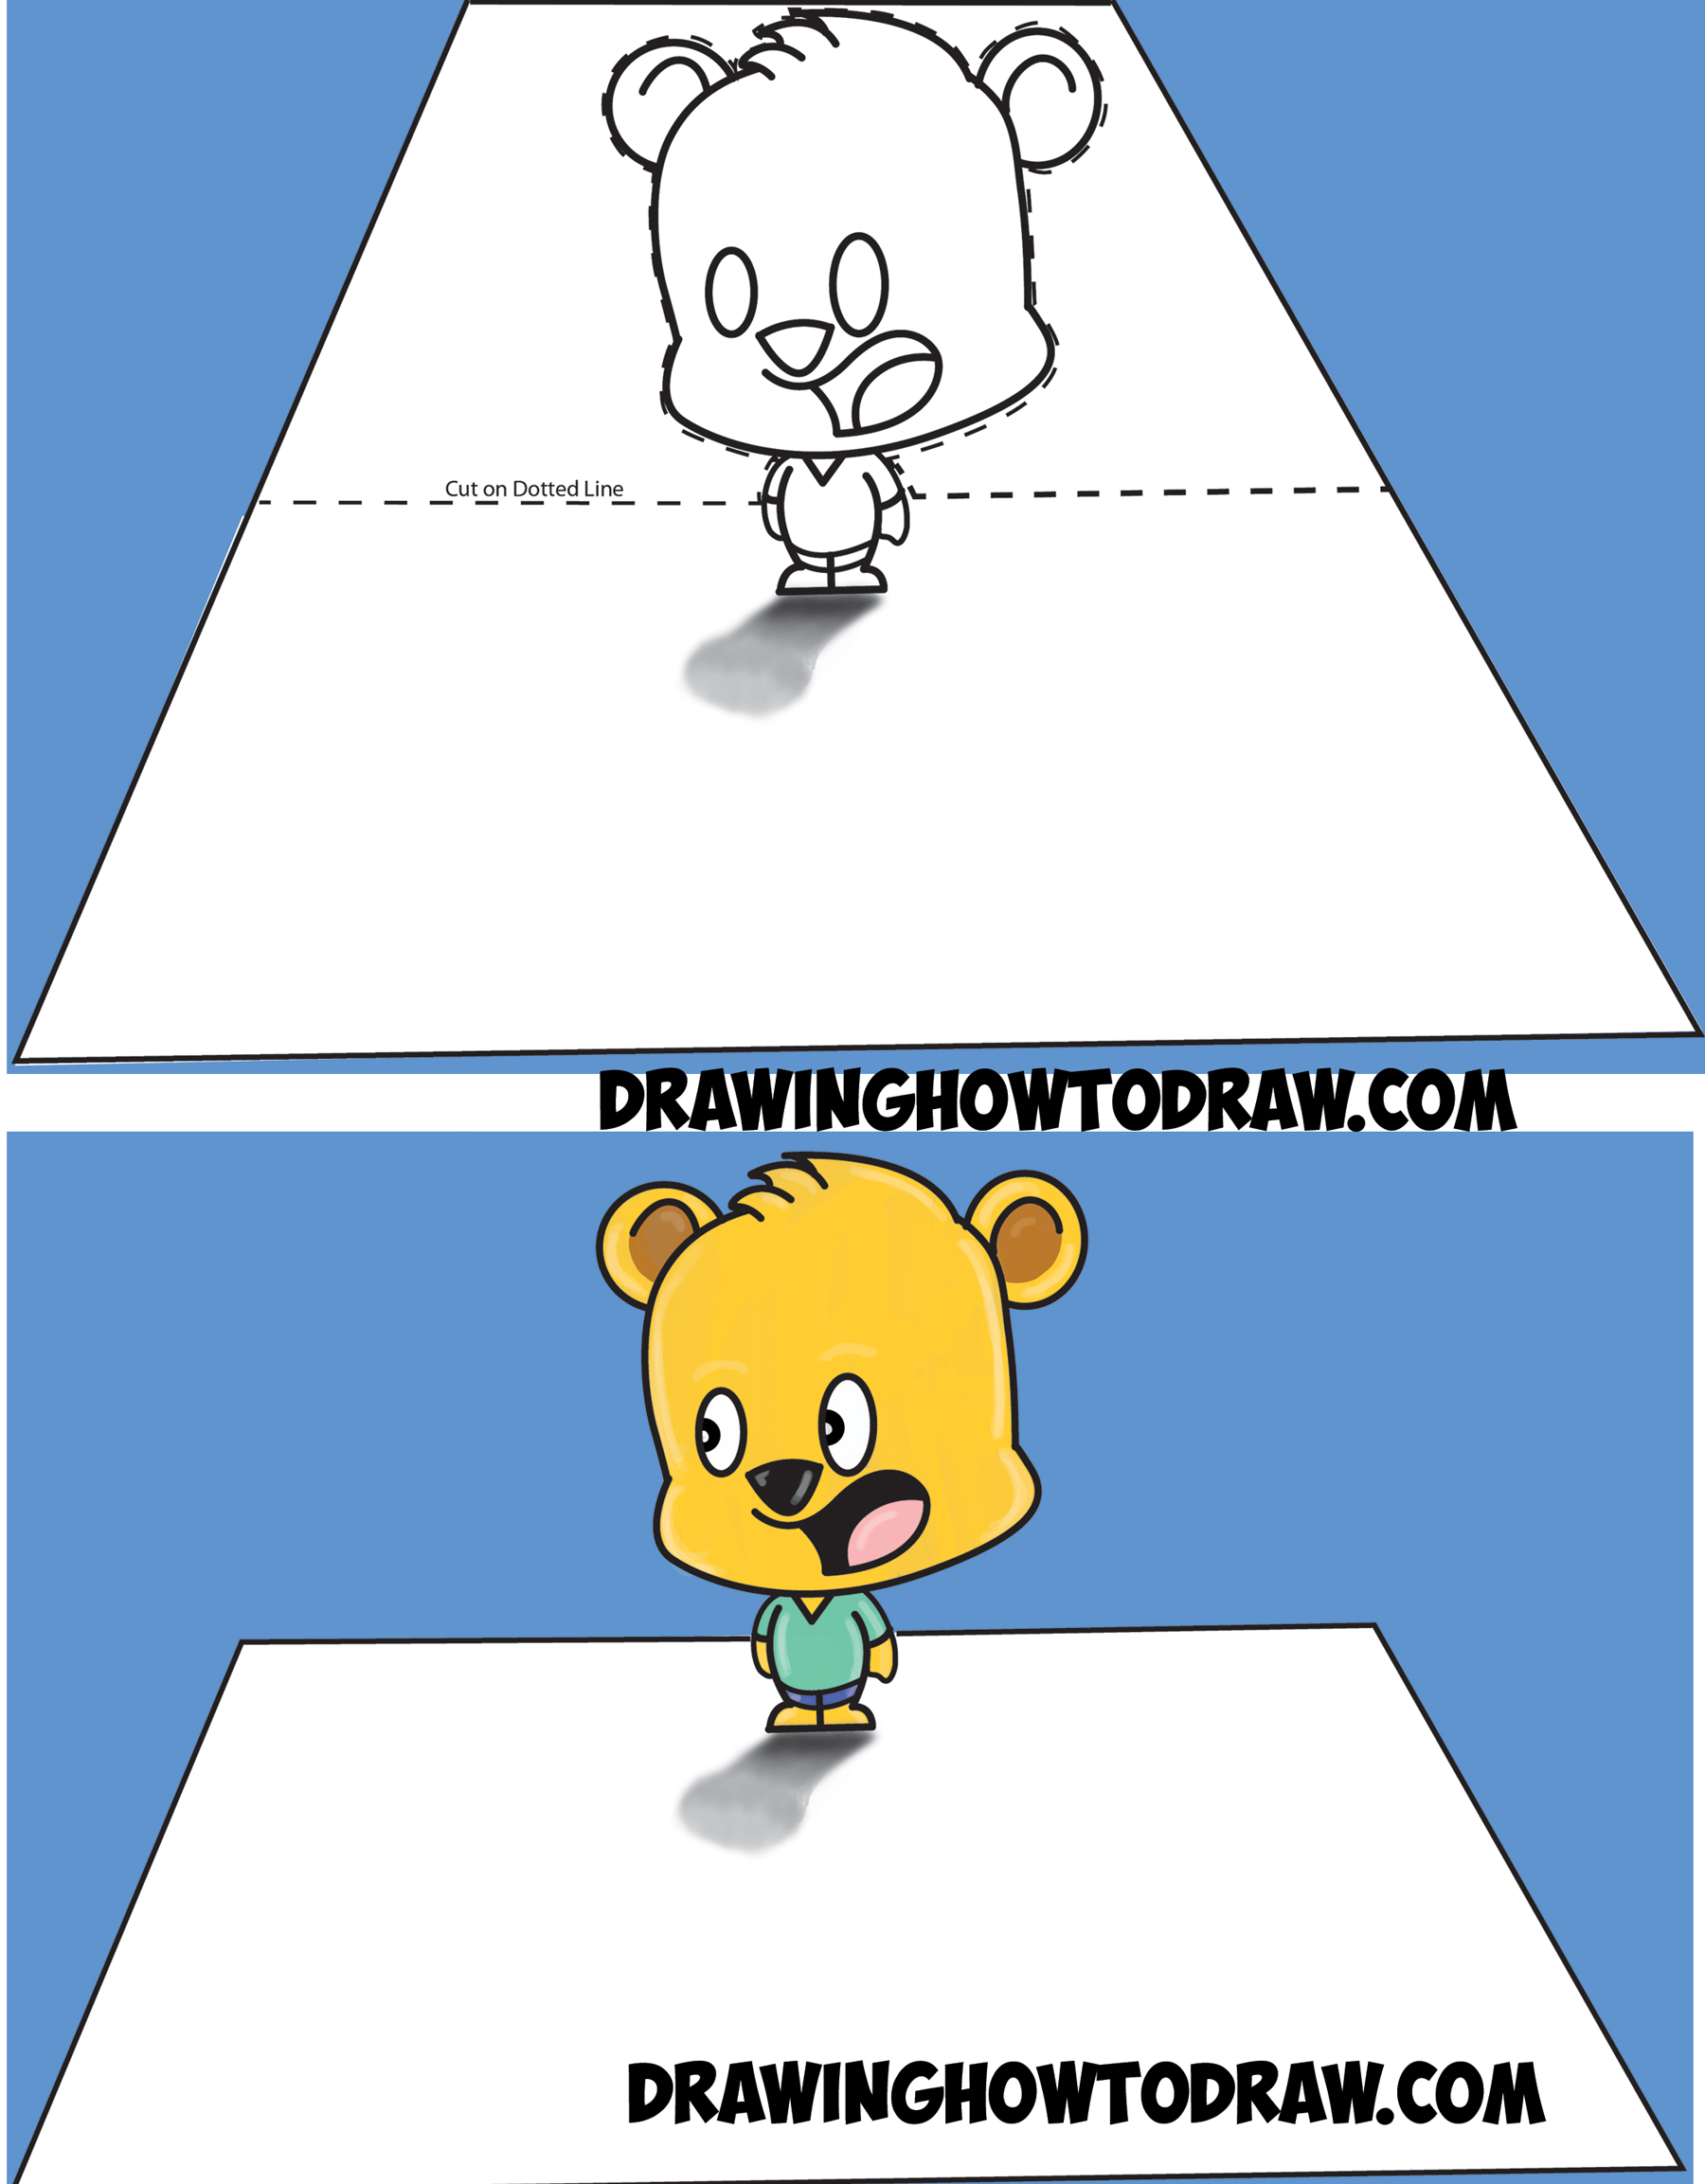 Learn How to Draw 3-Dimensional Cartoon Bear Standing on Top of Piece of Paper Optical Illusion - Simple Steps Drawing Lesson for Kids and Beginners